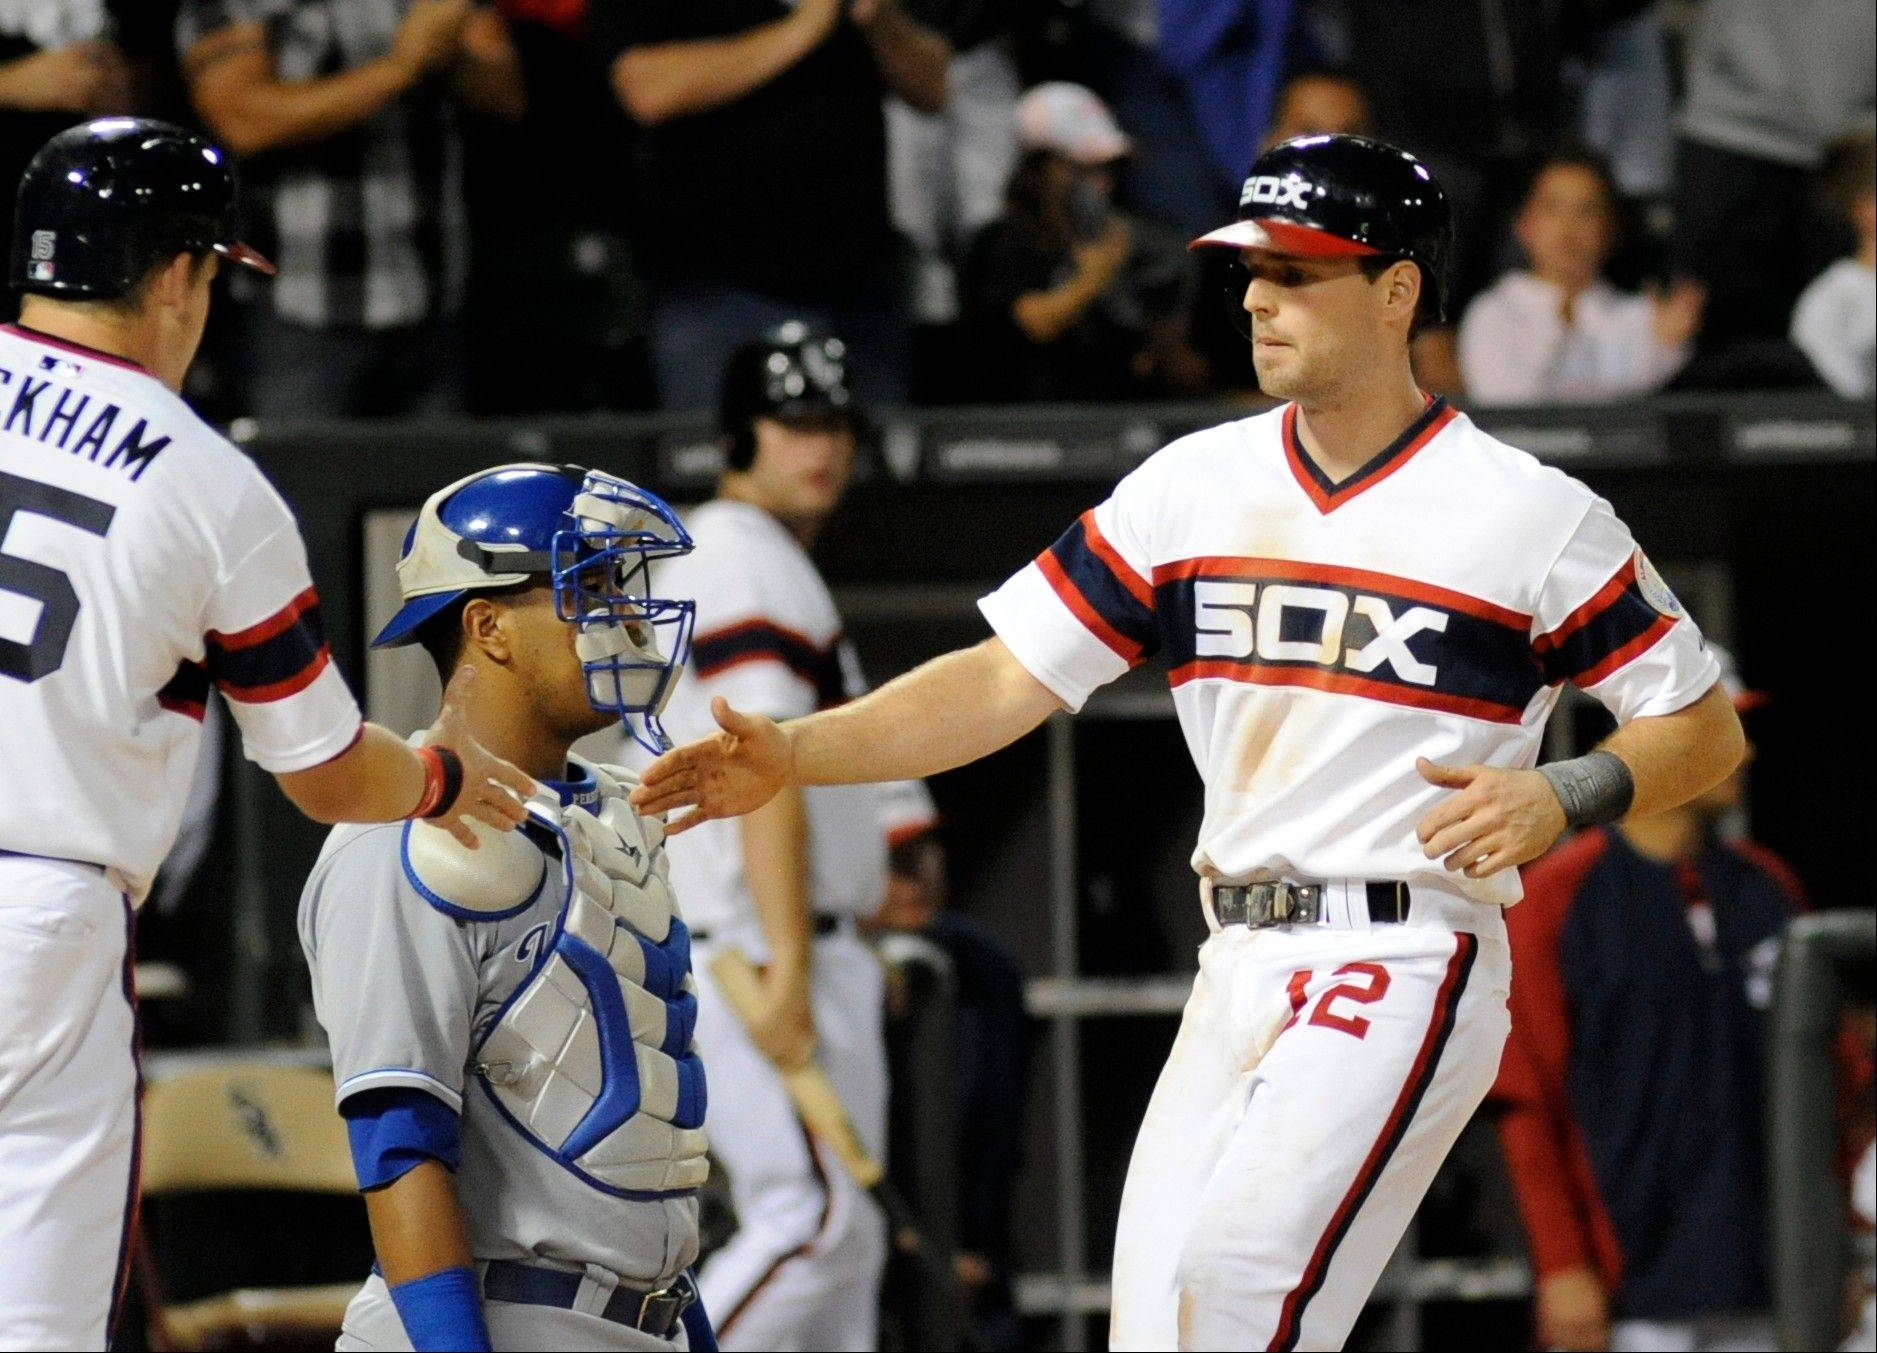 Chicago White Sox's Connor Gillaspie, right, is congratulated by Gordon Beckham after hitting a home run in the seventh inning of a baseball game against the Kansas City Royals Saturday in Chicago.